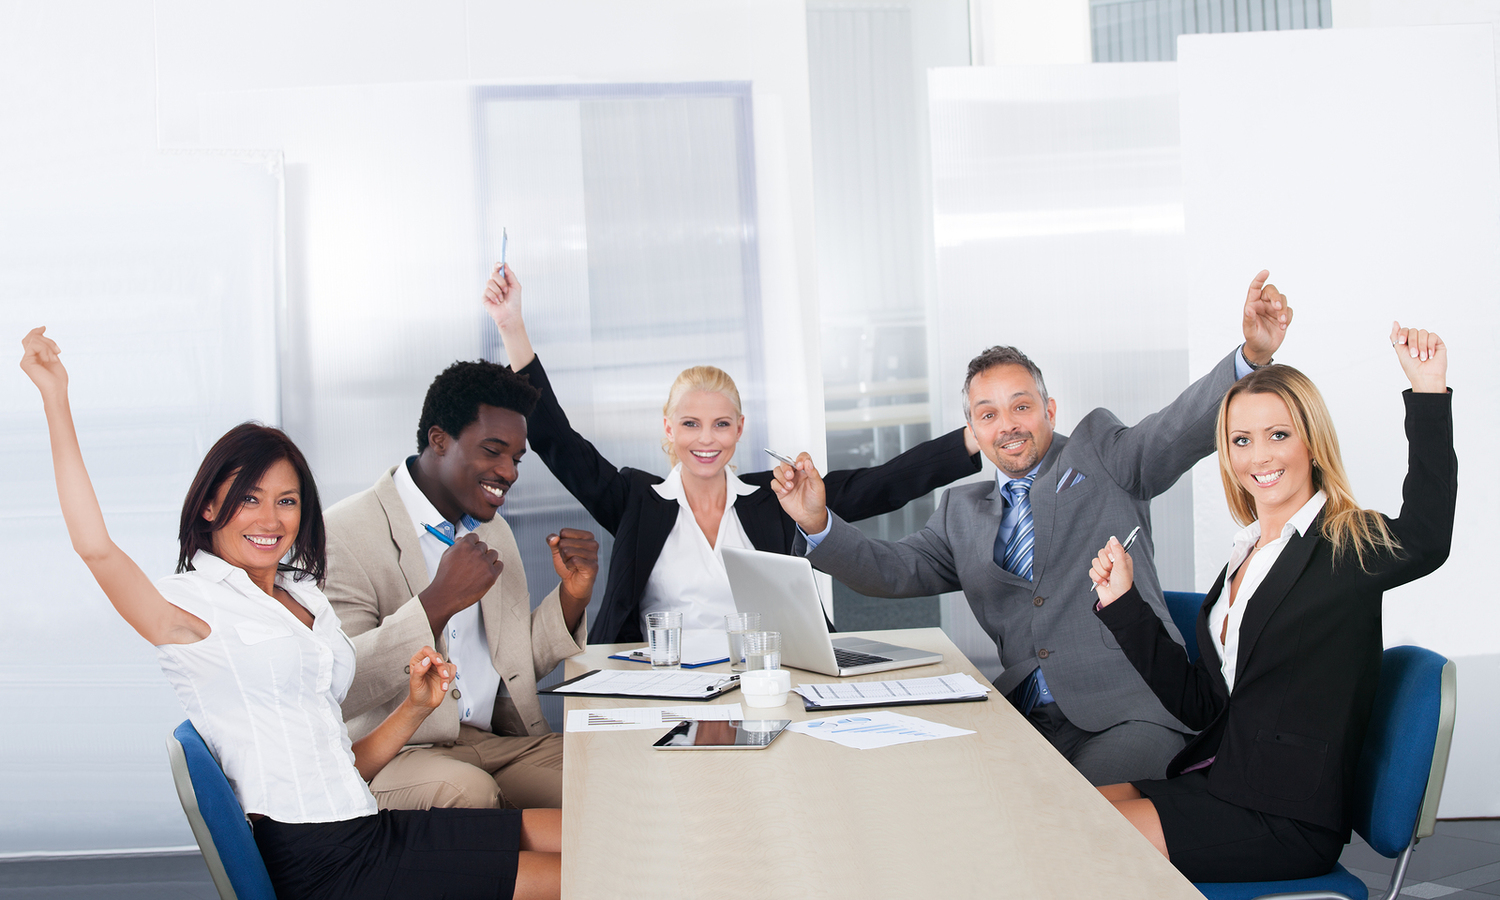 A team of engaged employees sitting at a conference table, celebrating a recent success.